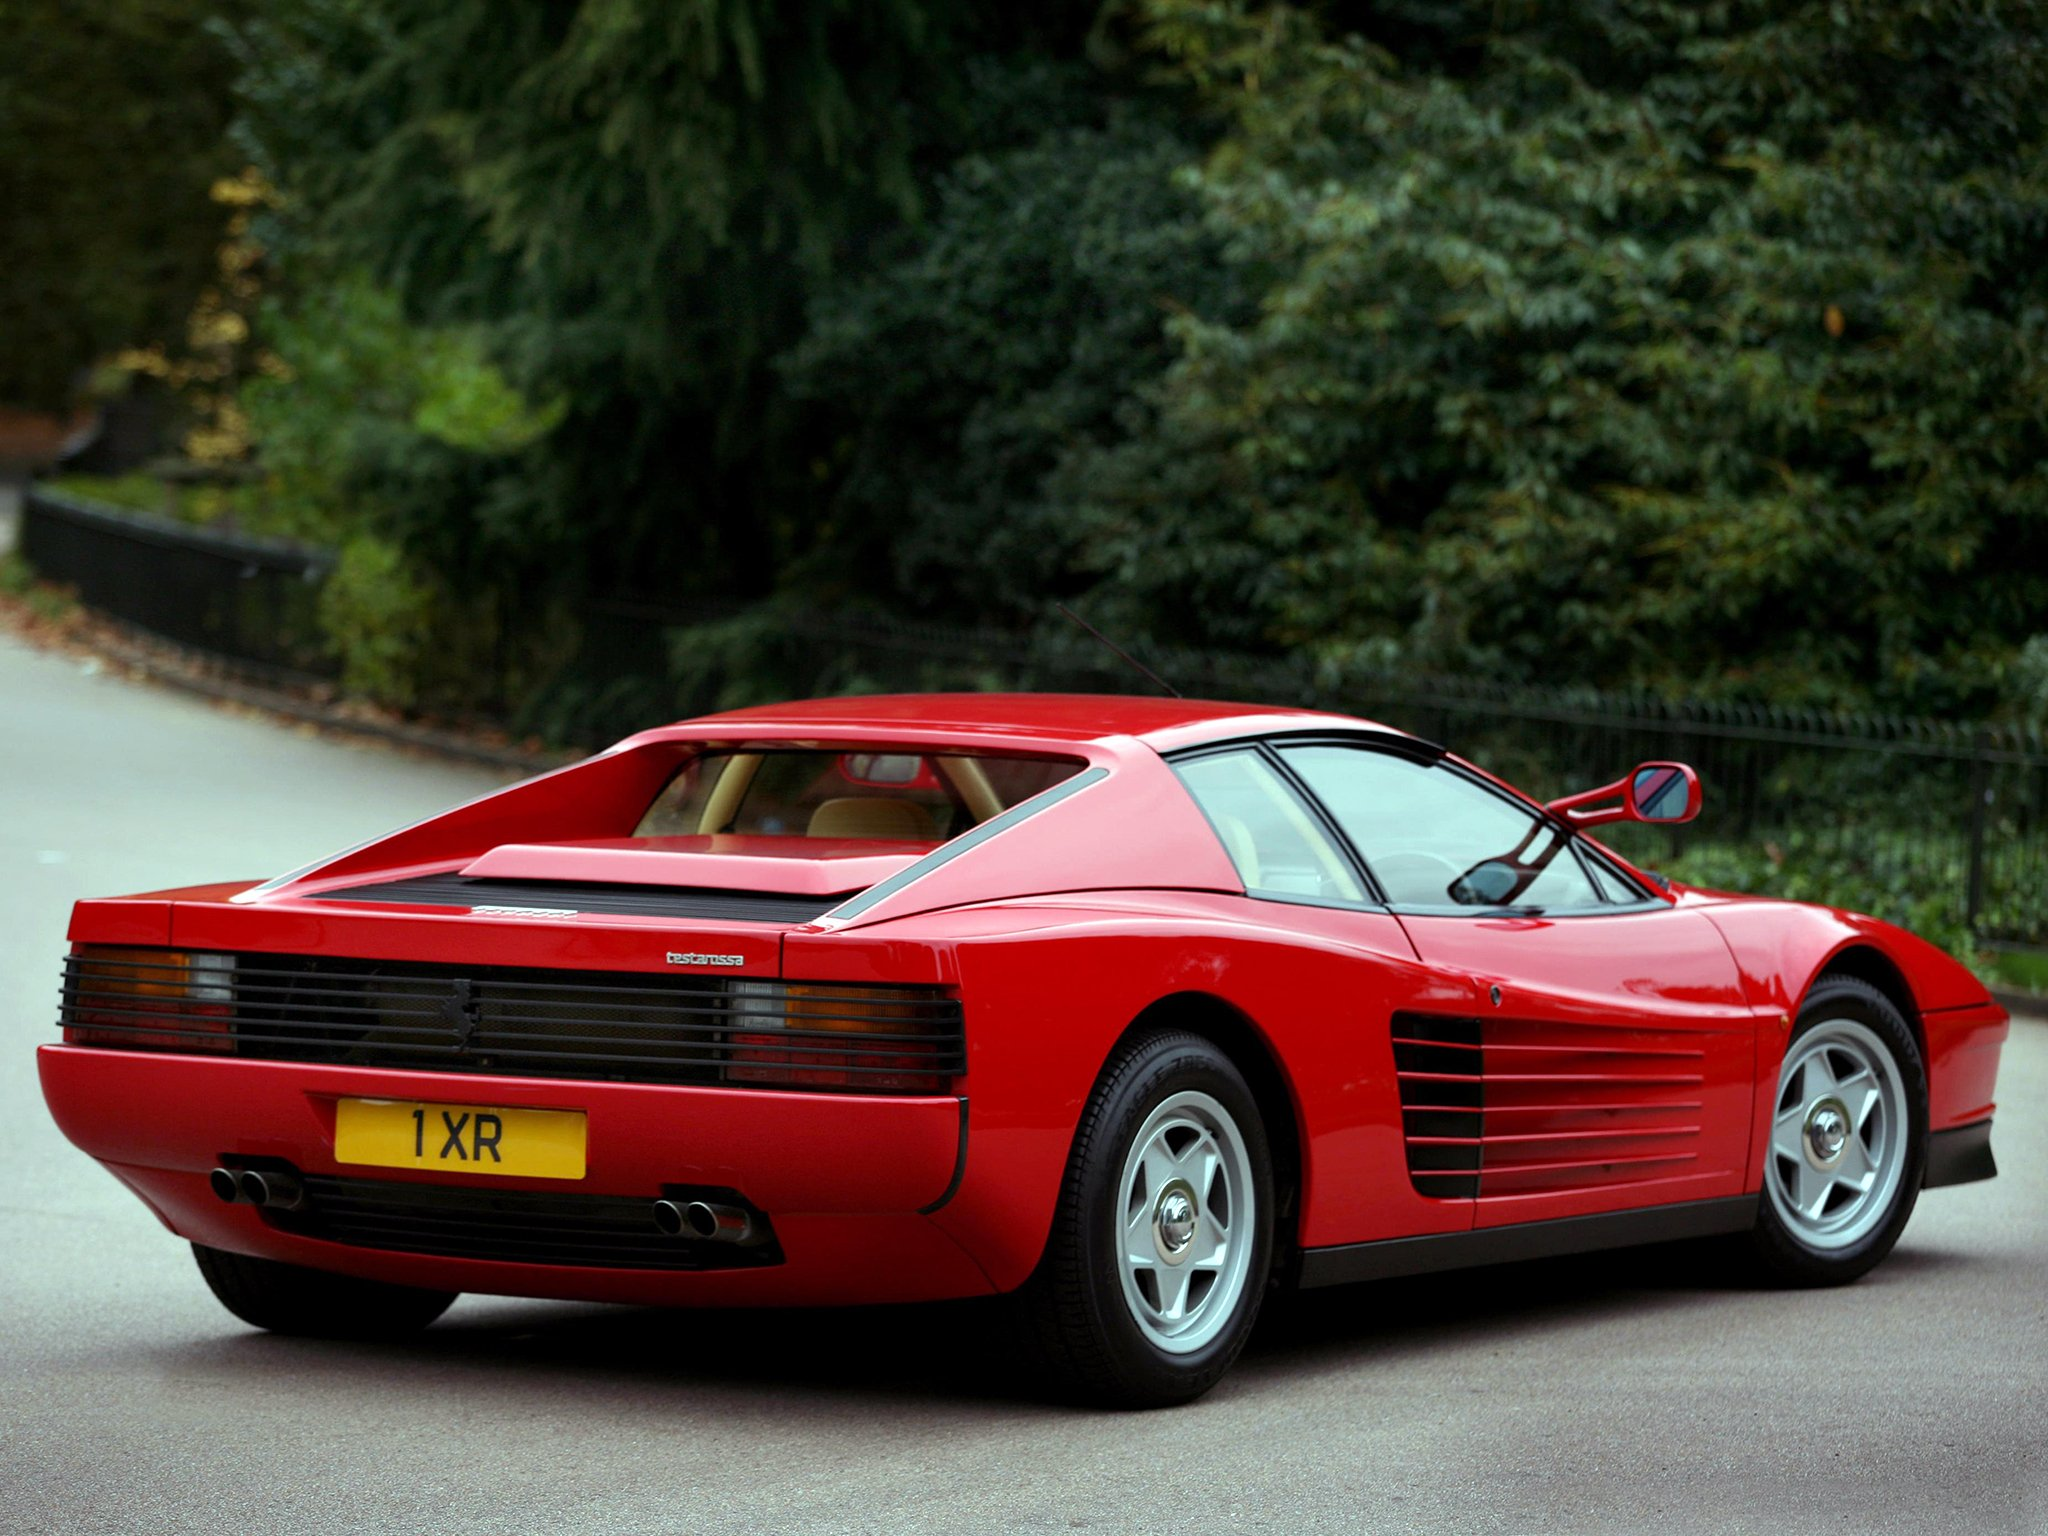 1984 86 Ferrari Testarossa Uk Spec Supercar F Wallpaper